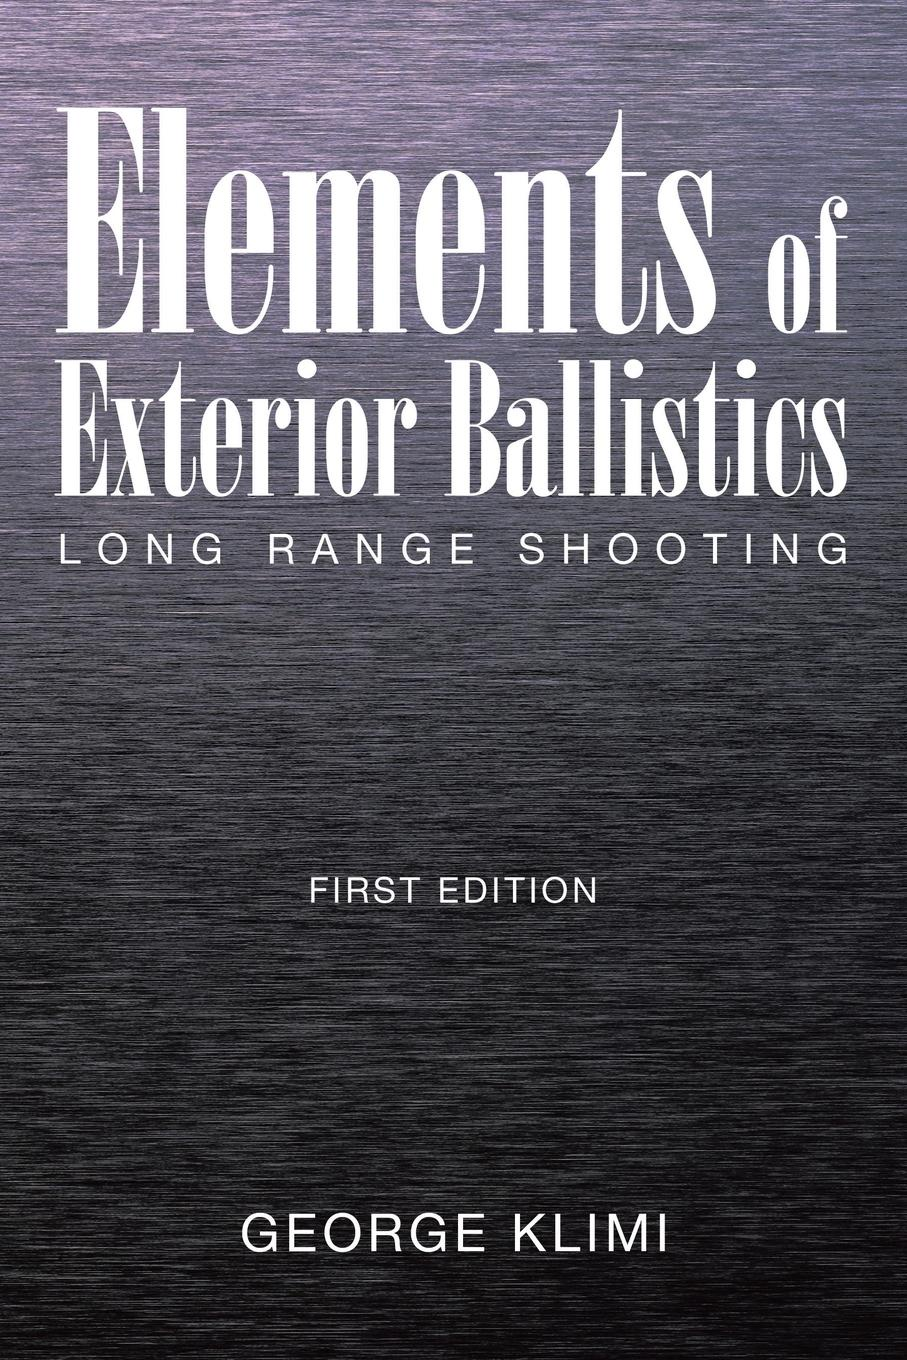 George Klimi Elements of Exterior Ballistics. Long Range Shooting First Edition